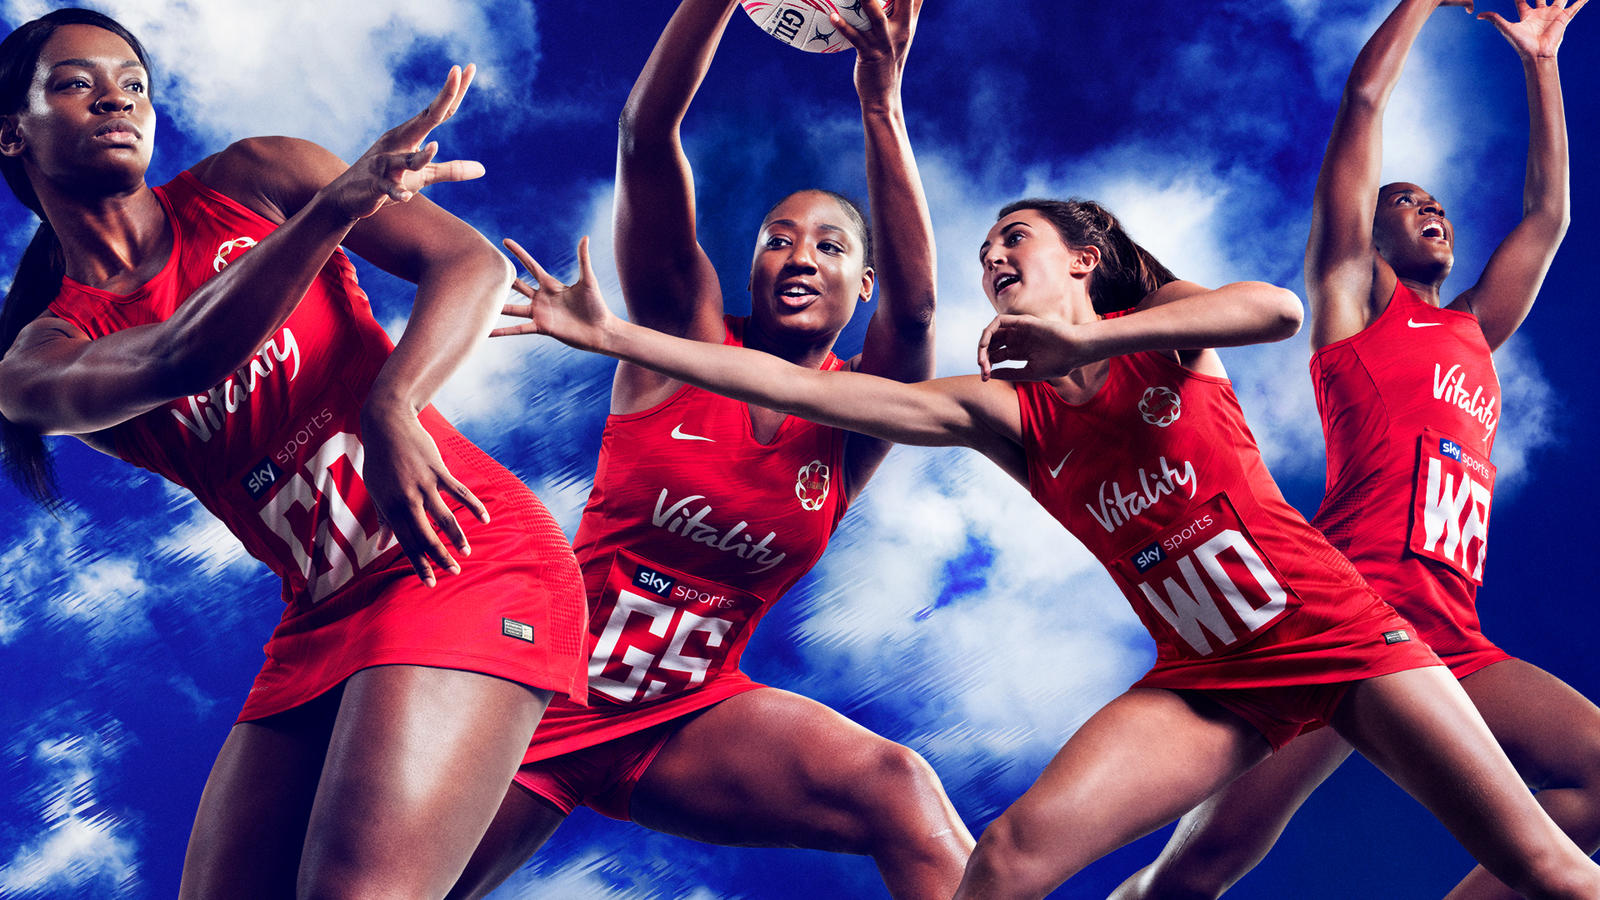 Nike Partners With England Netball to Grow Female Sport Participation in the UK 3